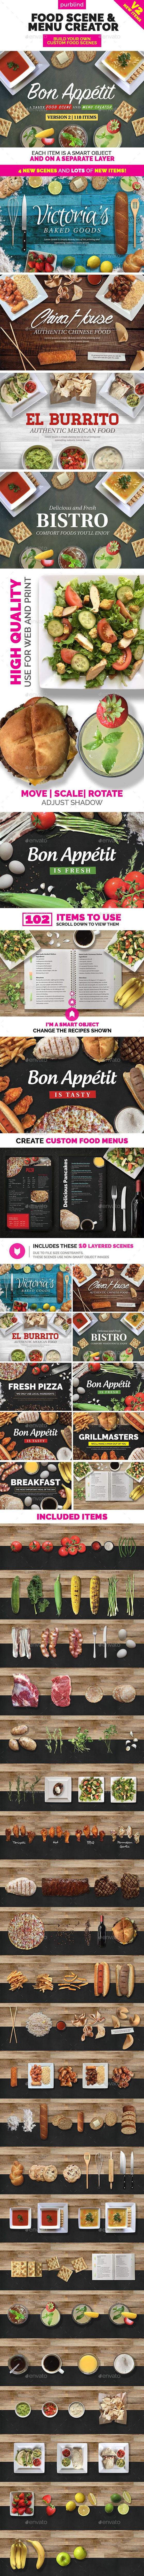 61 best header images scene generators images on pinterest scene